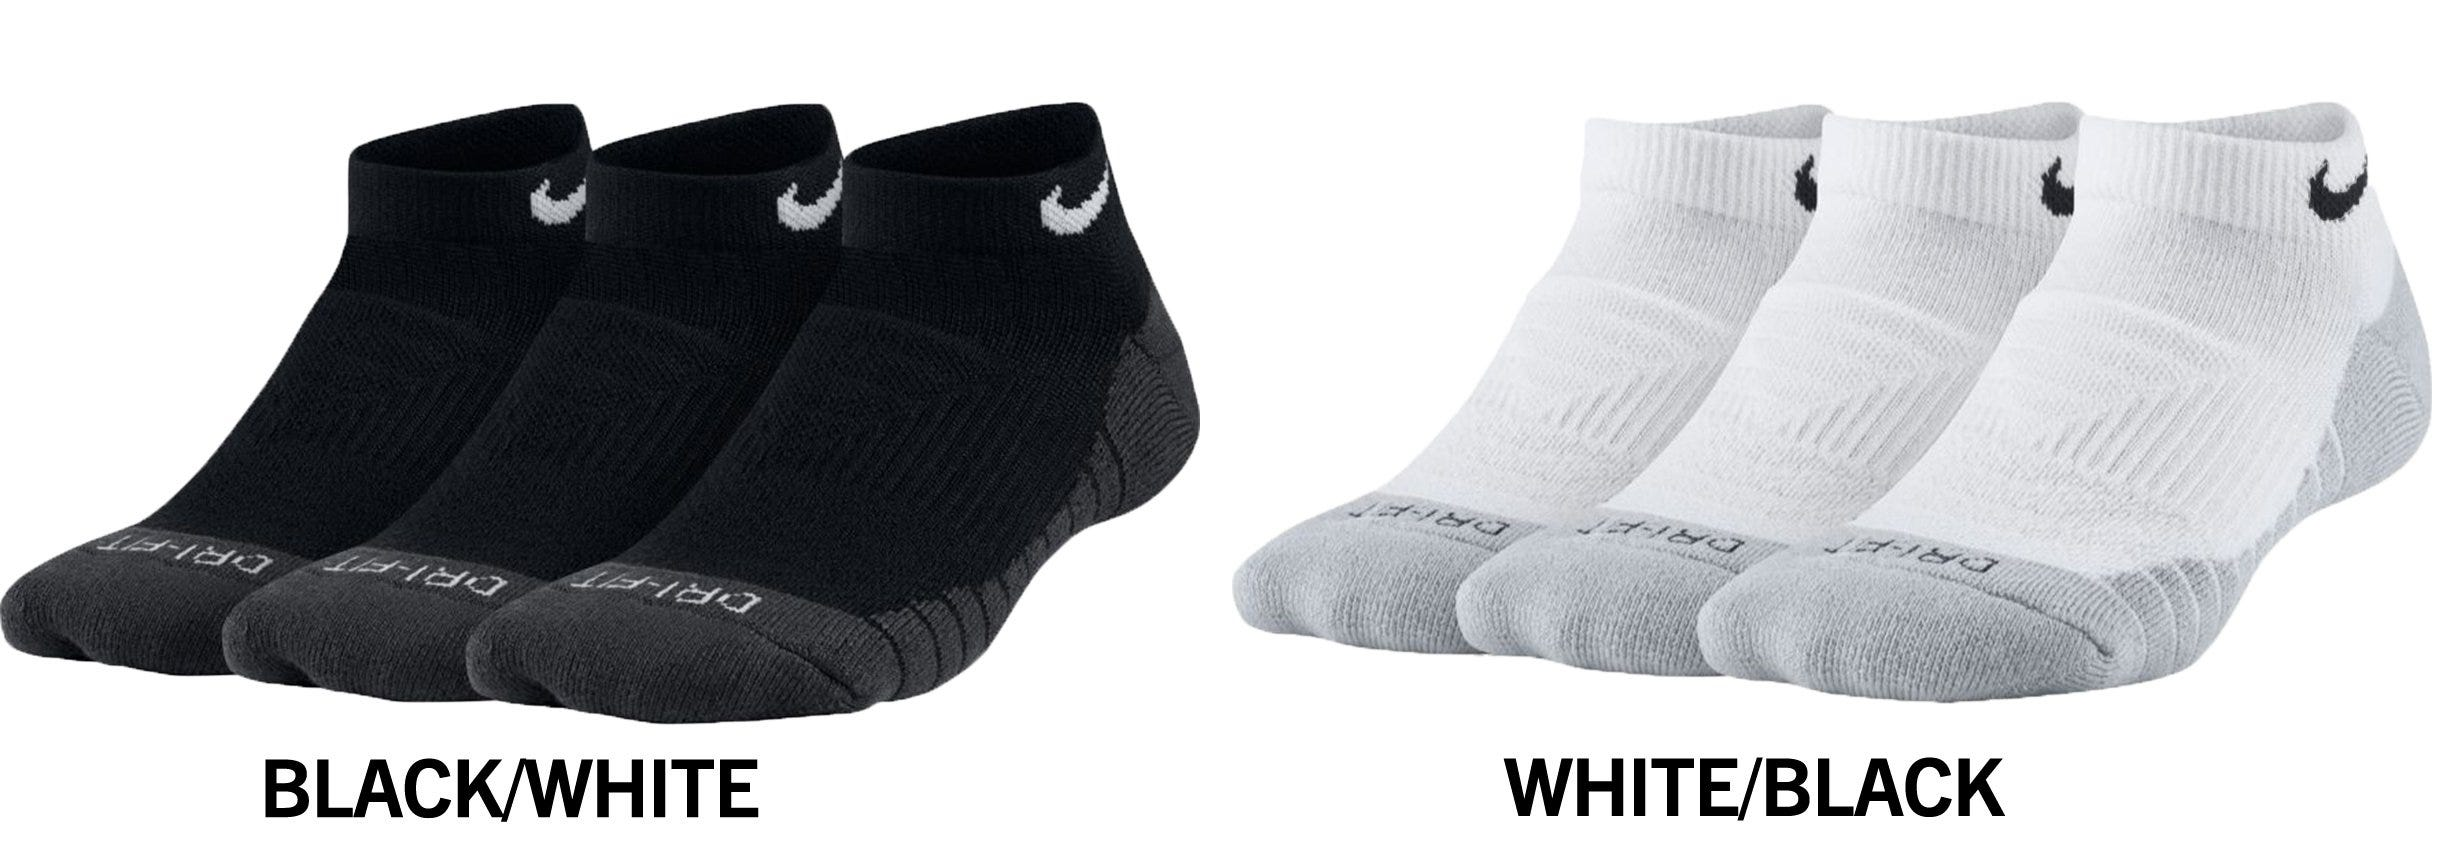 newest 50ad5 2a058 Nike Dry Cushion Youth No-Show Socks - 3 Pack